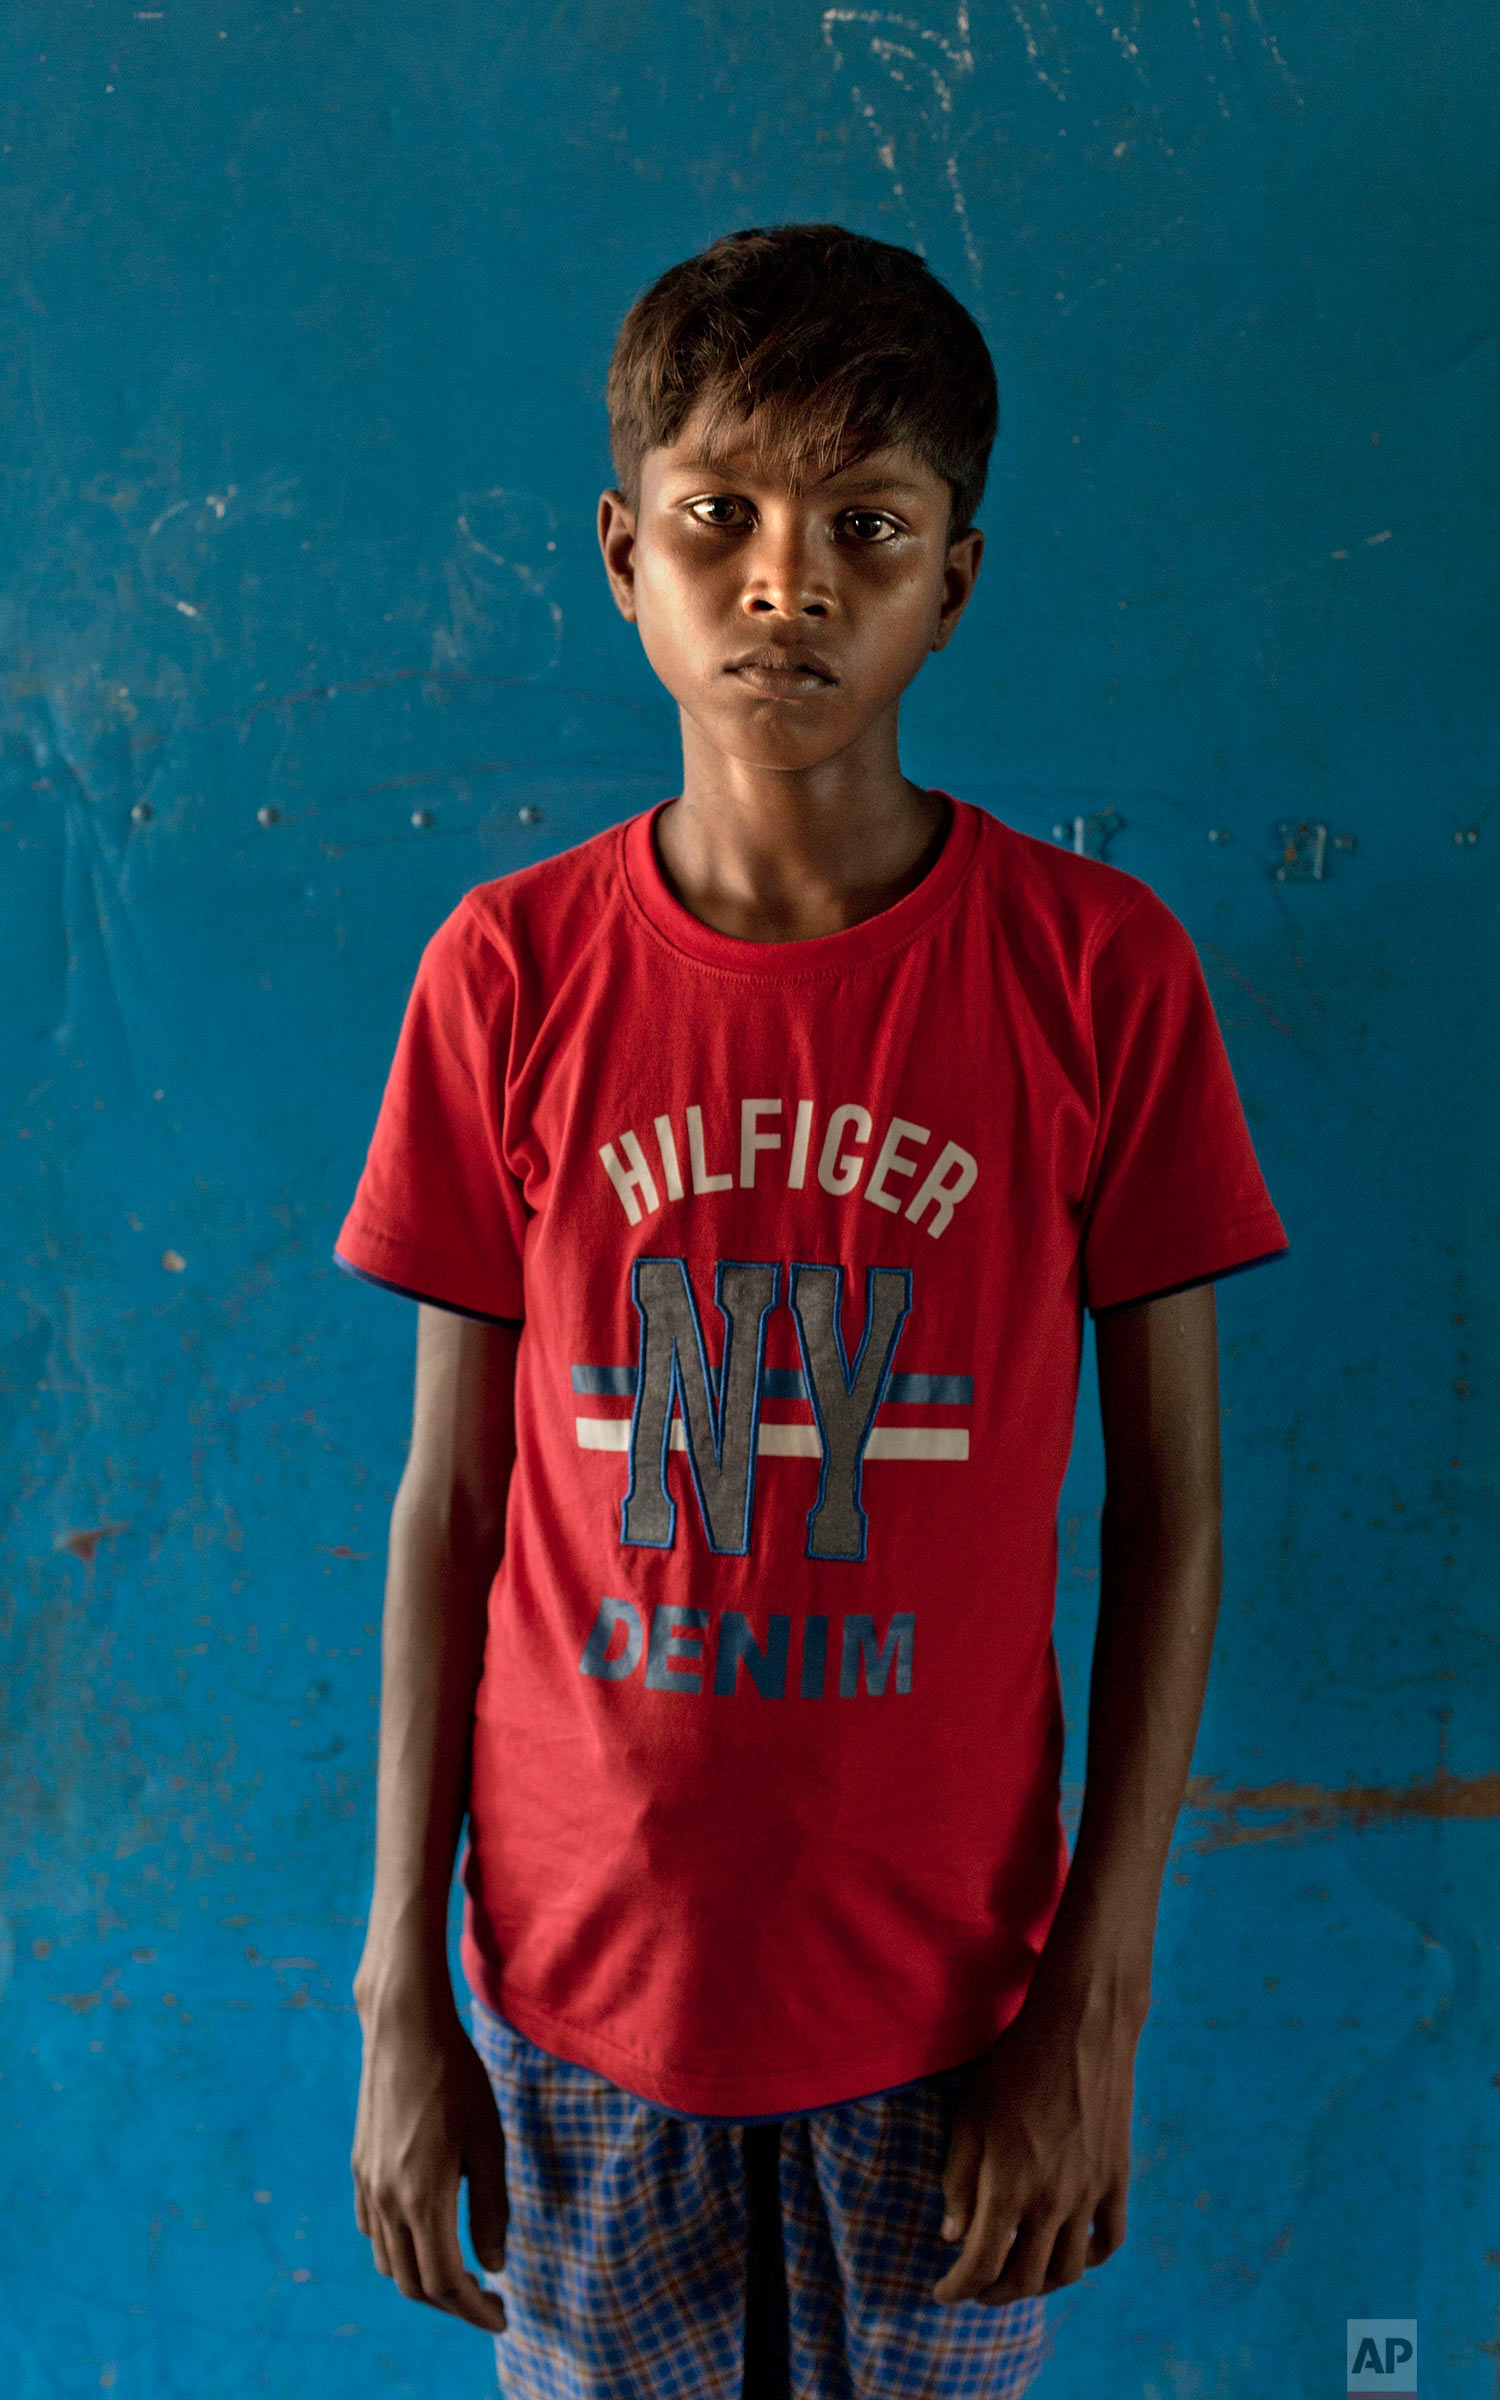 In this Oct. 1, 2017, photo, a Rohingya Muslim boy from Myanmar's Moidaung Village Abdul Gawfar, 13, poses for a photograph inside a transit shelter at Kutupalong camp for newly arrived Rohingya refugees in Bangladesh. His mother drowned when the boat the family was traveling in capsized on Sept. 29. Gophor almost drowned too and was reunited with his brothers after two days of medical treatment. His mother drowned in the accident. The brothers said their father was shot and killed by the Myanmar army. (AP Photo/Gemunu Amarasinghe)